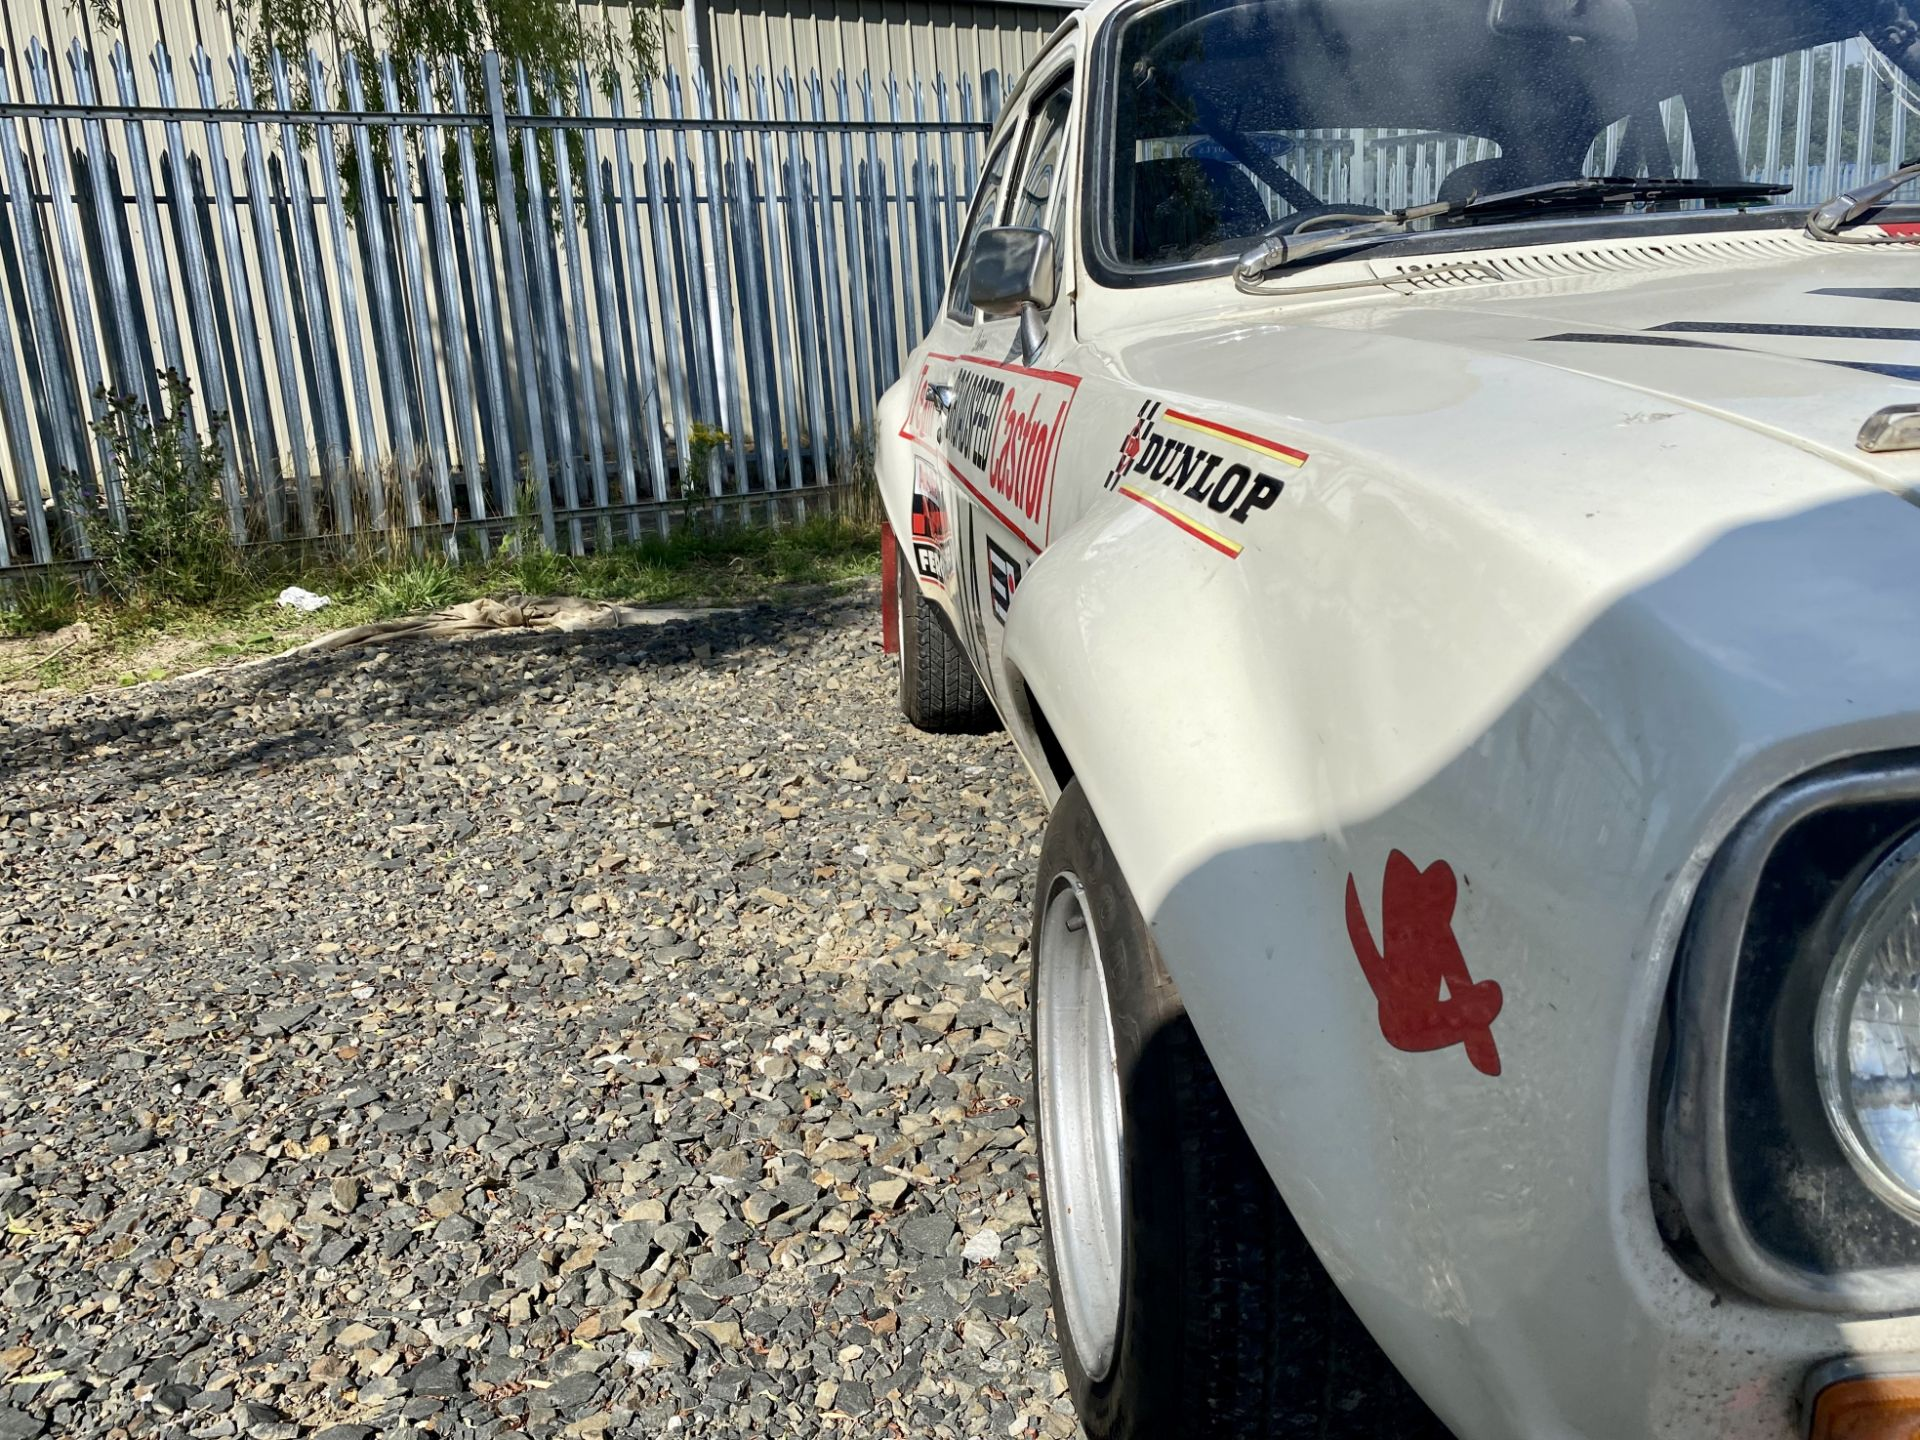 Ford Escort Mexico - Image 26 of 51